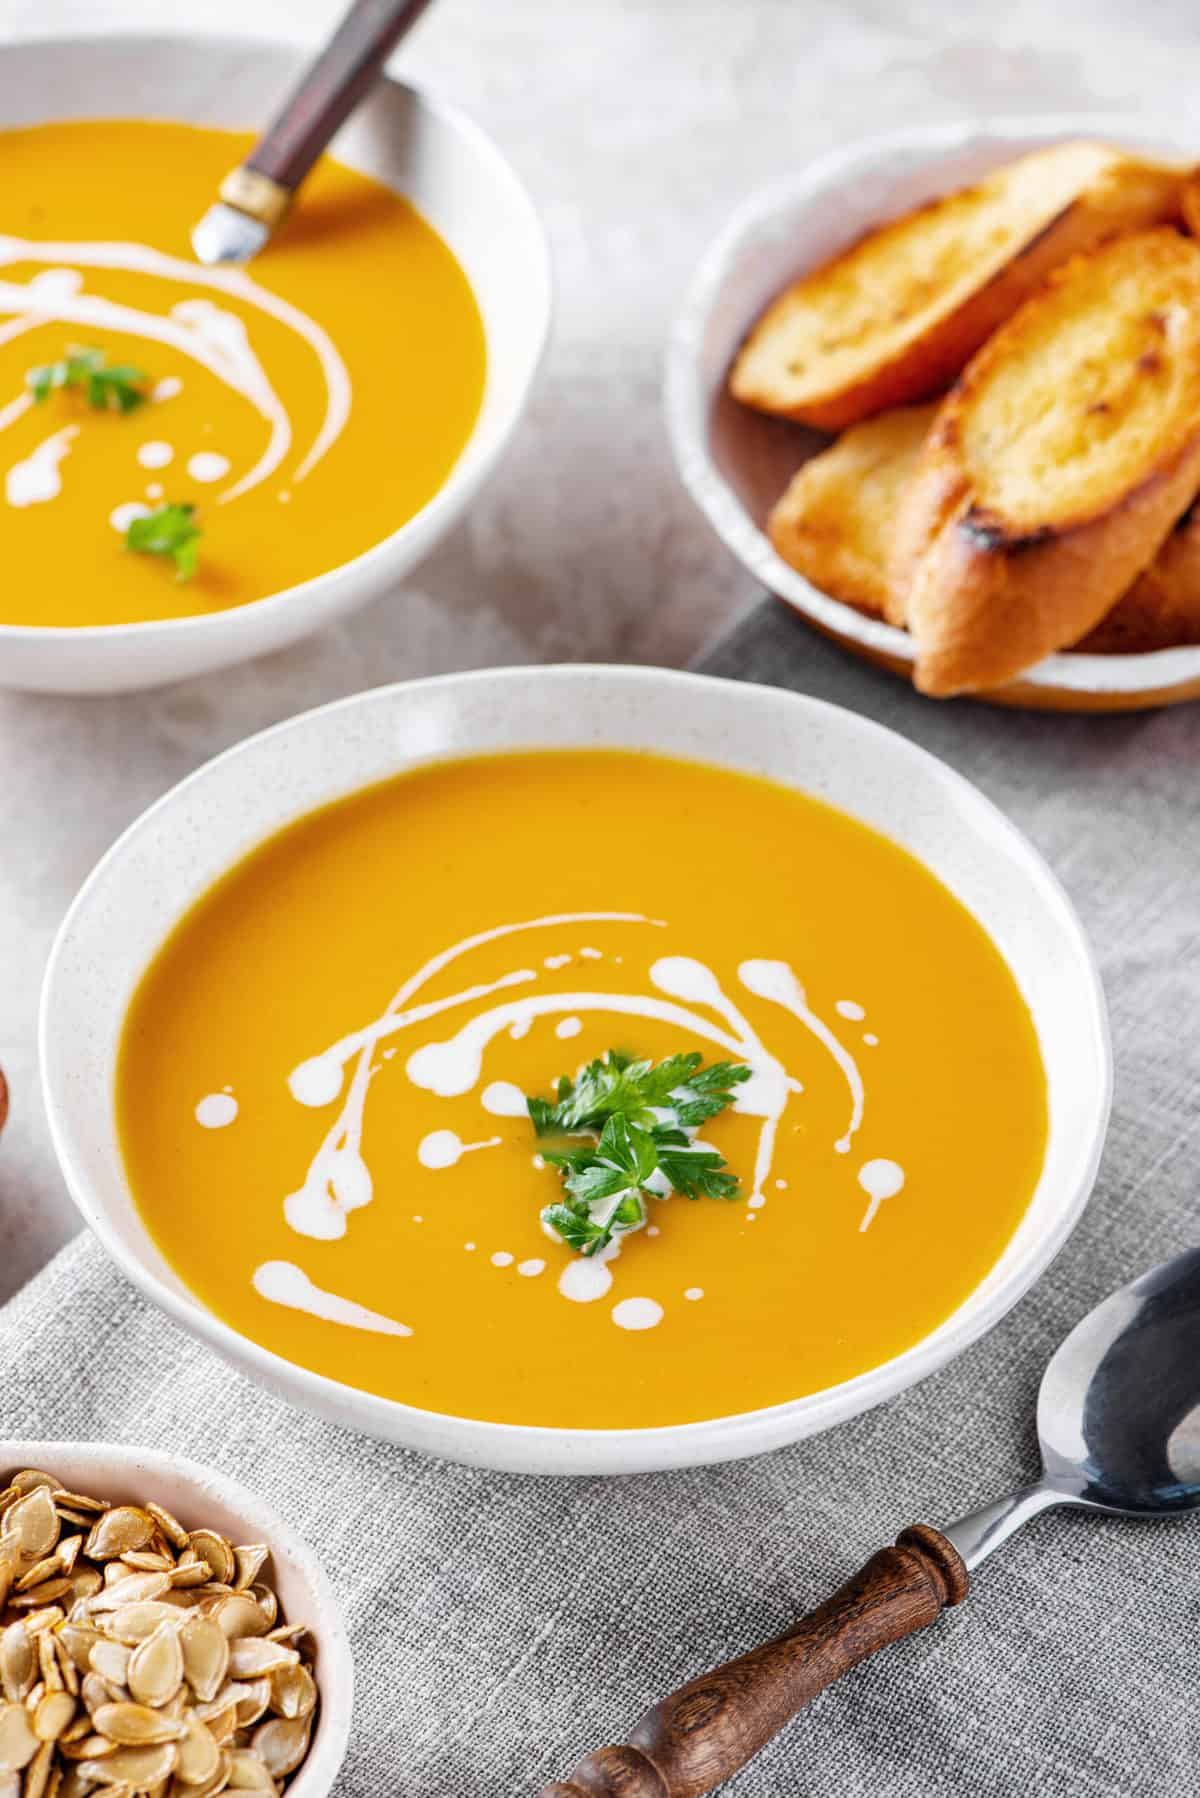 butternut squash soup with a sour cream swirl design and cilantro served in a white bowl